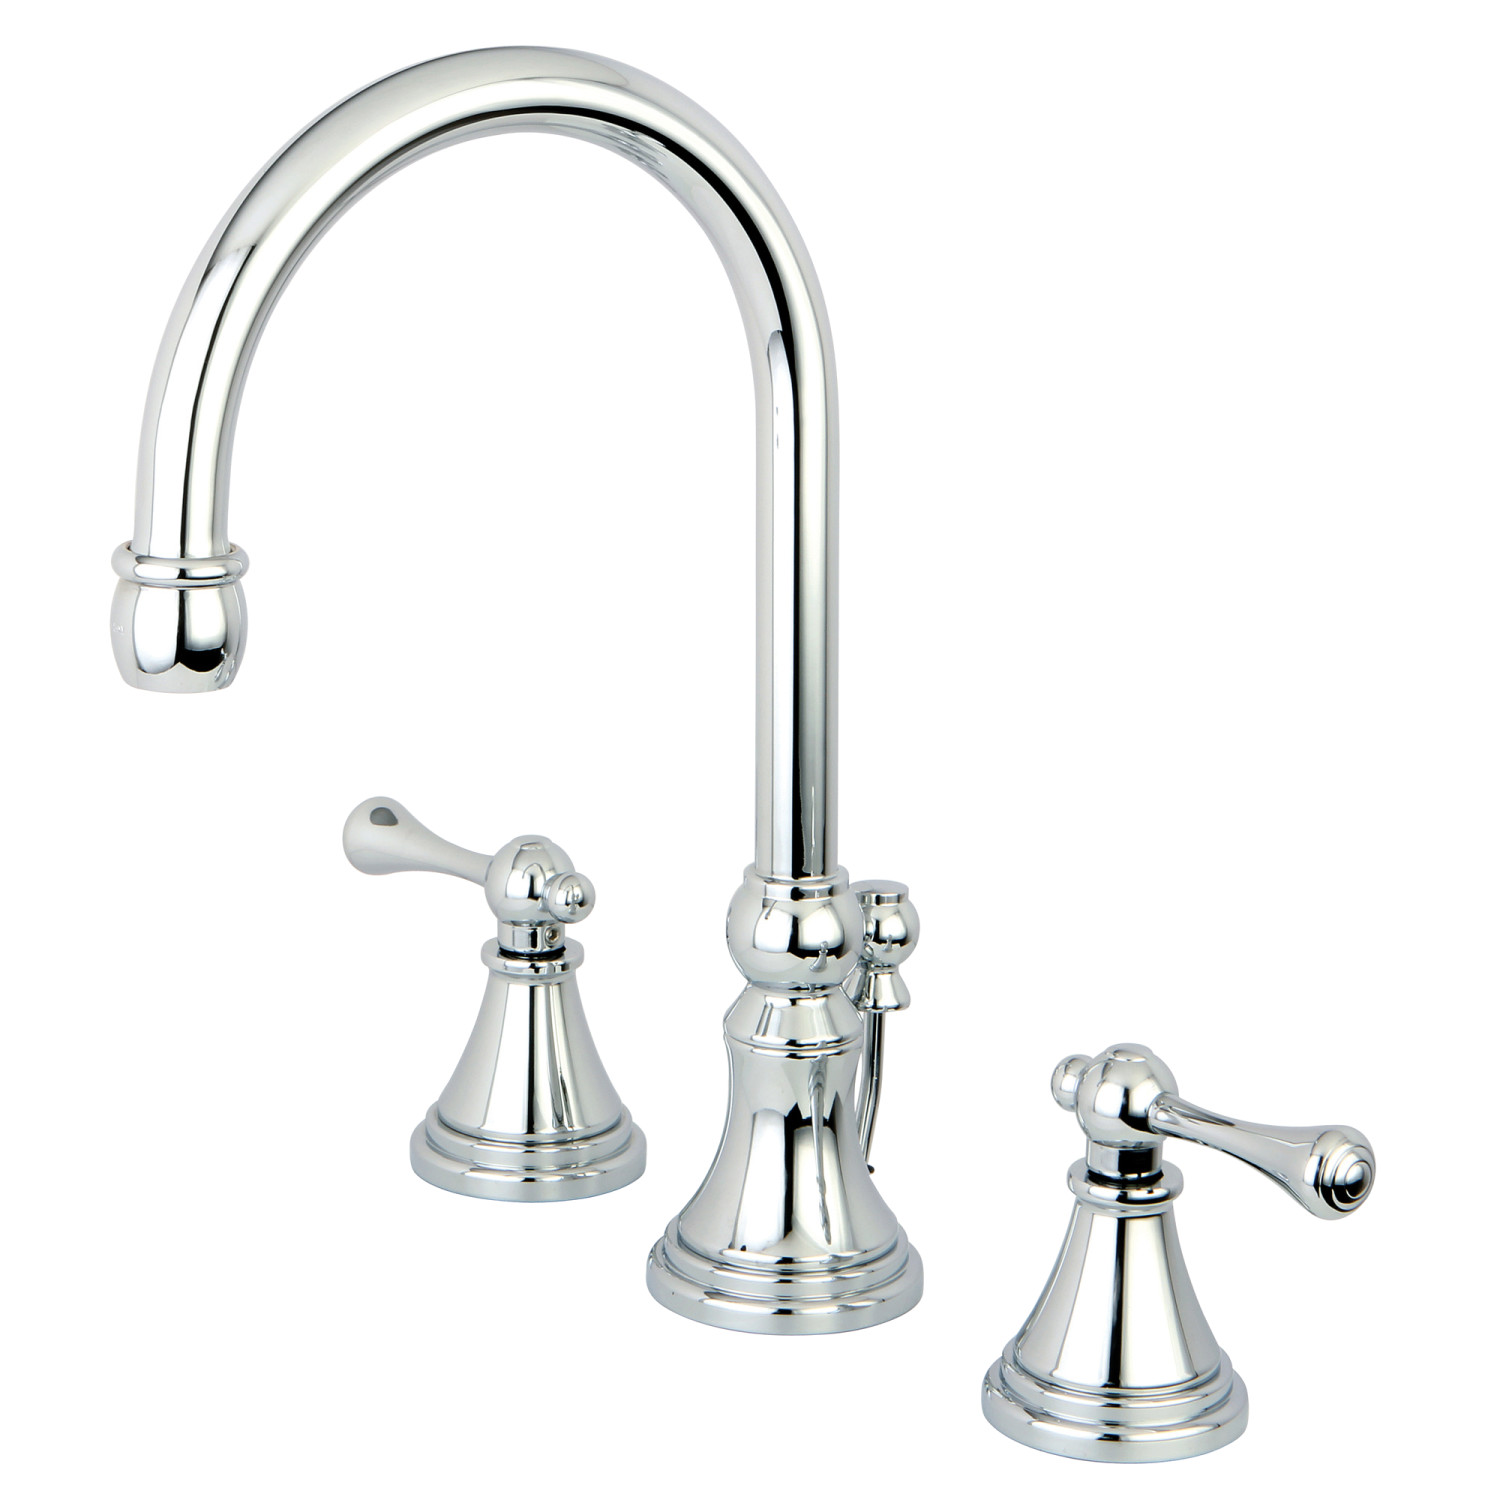 Traditional Two-Handle 3-Hole Deck Mounted Widespread Bathroom Faucet with Brass Pop-Up in Polished Chrome Color with 4 Finish Options